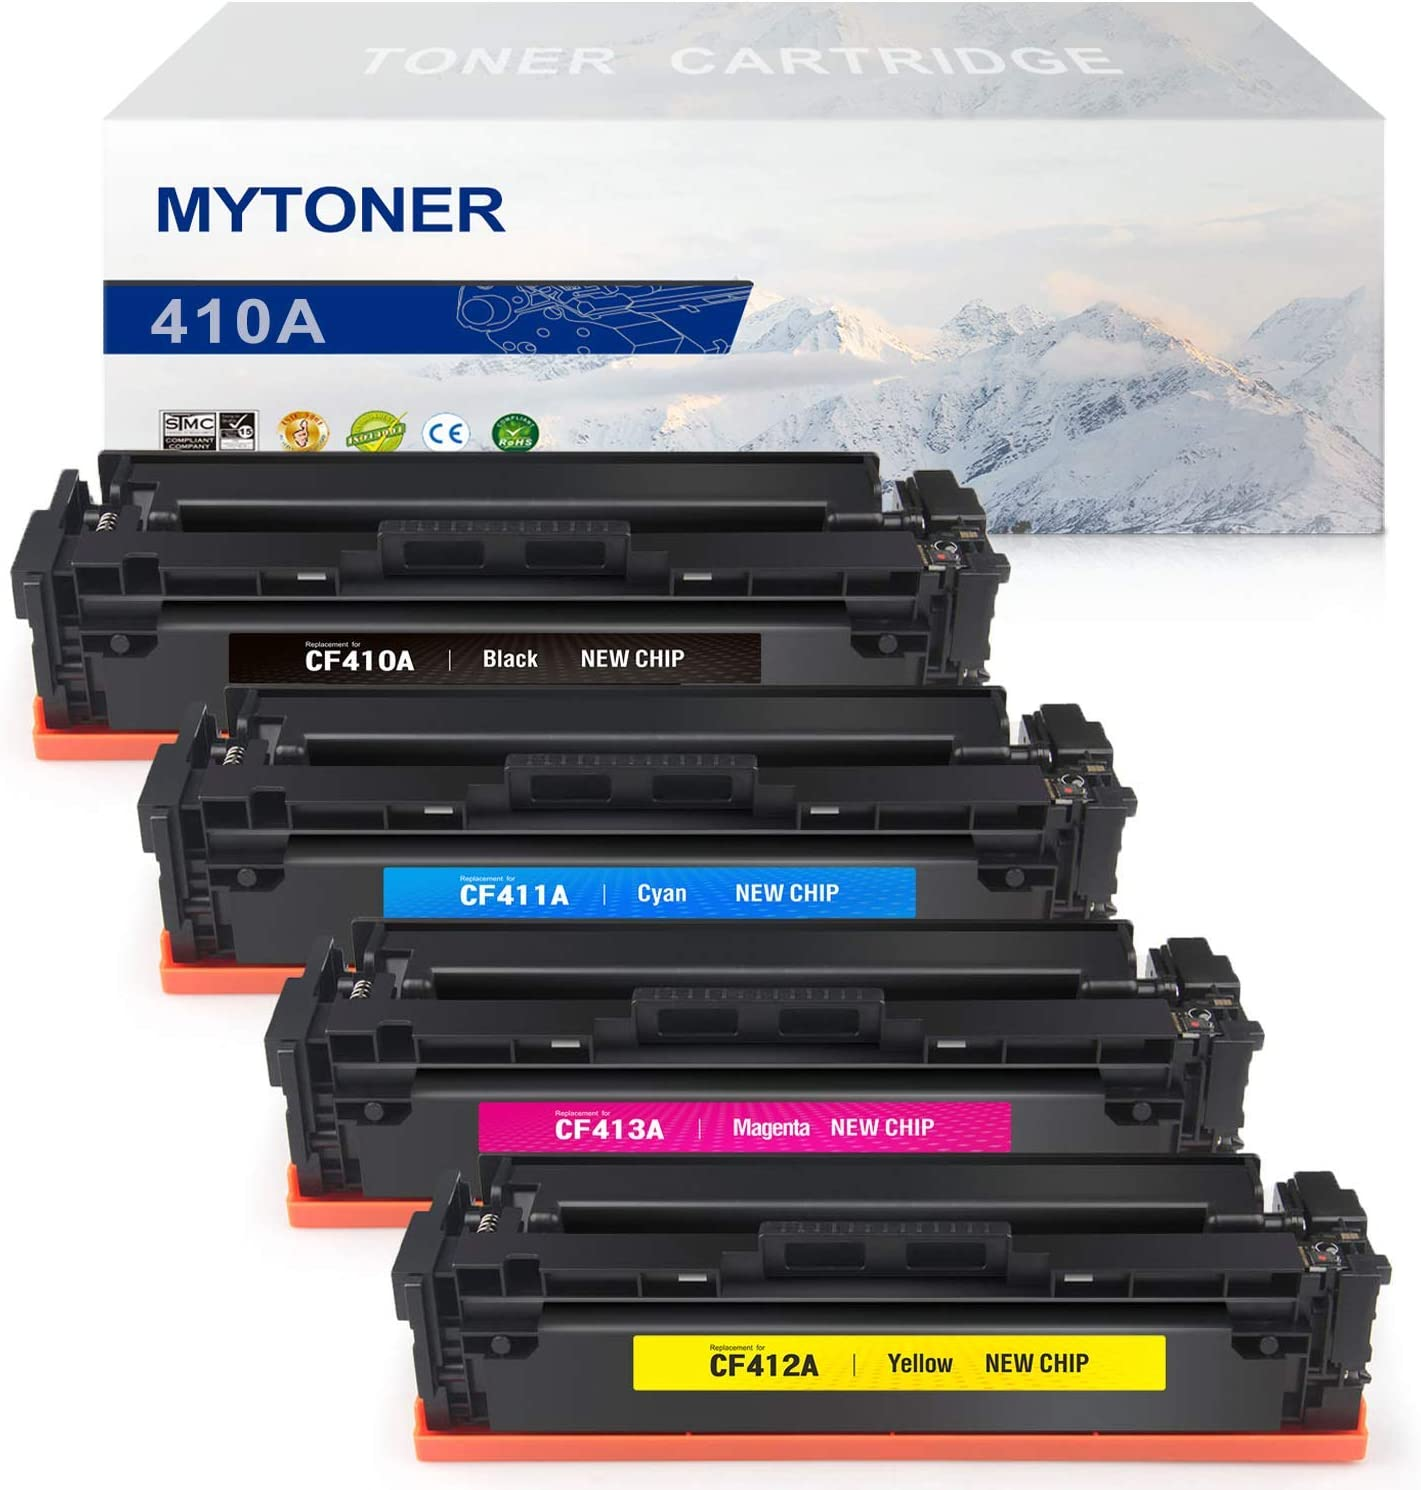 MYTONER Compatible Toner Cartridge Replacement for HP 410A CF410A CF411A CF412A CF413A 410X (Black Cyan Magenta Yellow, 4-Pack)